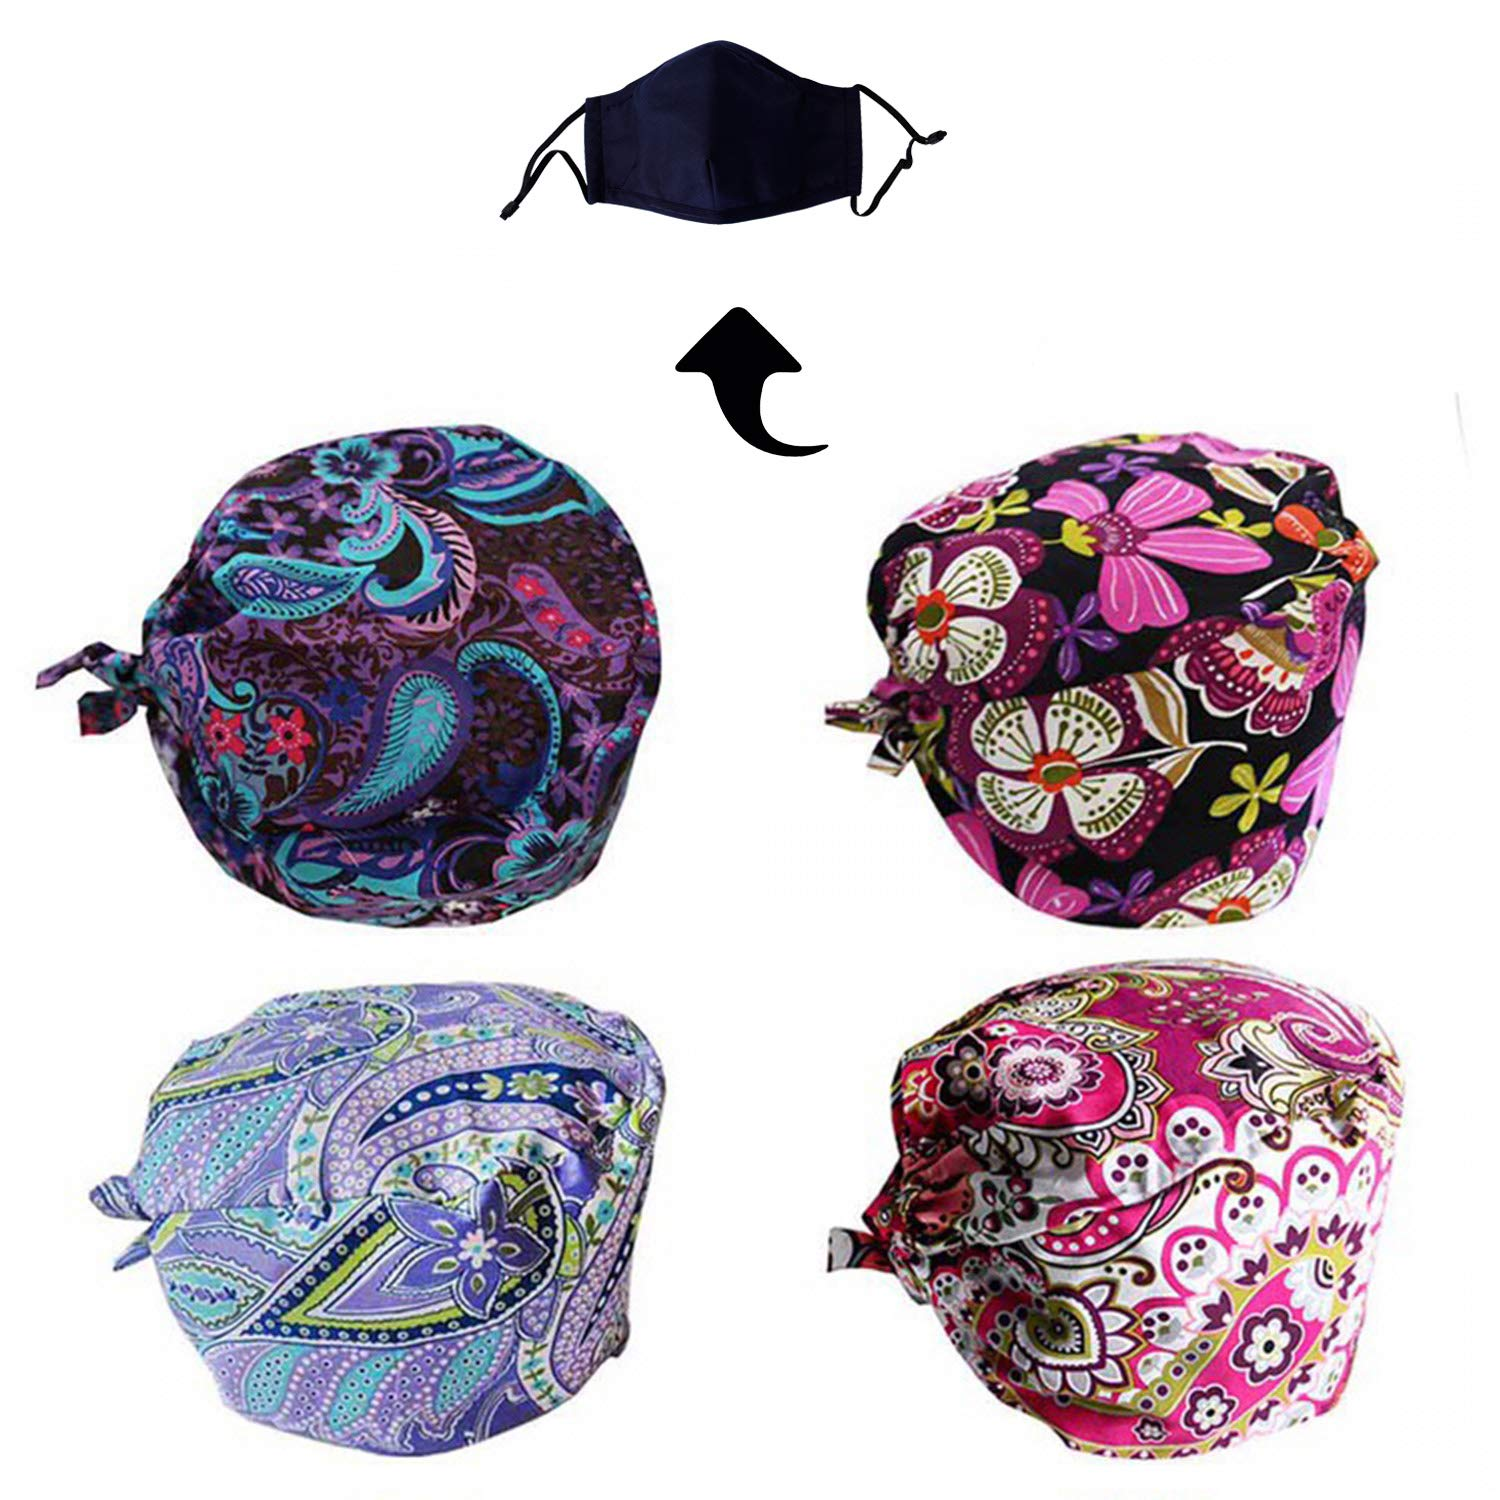 JoyRing 4 Pack Unisex Adjustable Surgical Hat Scrub Cap with Sweatband for Ponytail and Free Reusable Cotton Mask, One Size Fit Most by JoyRing